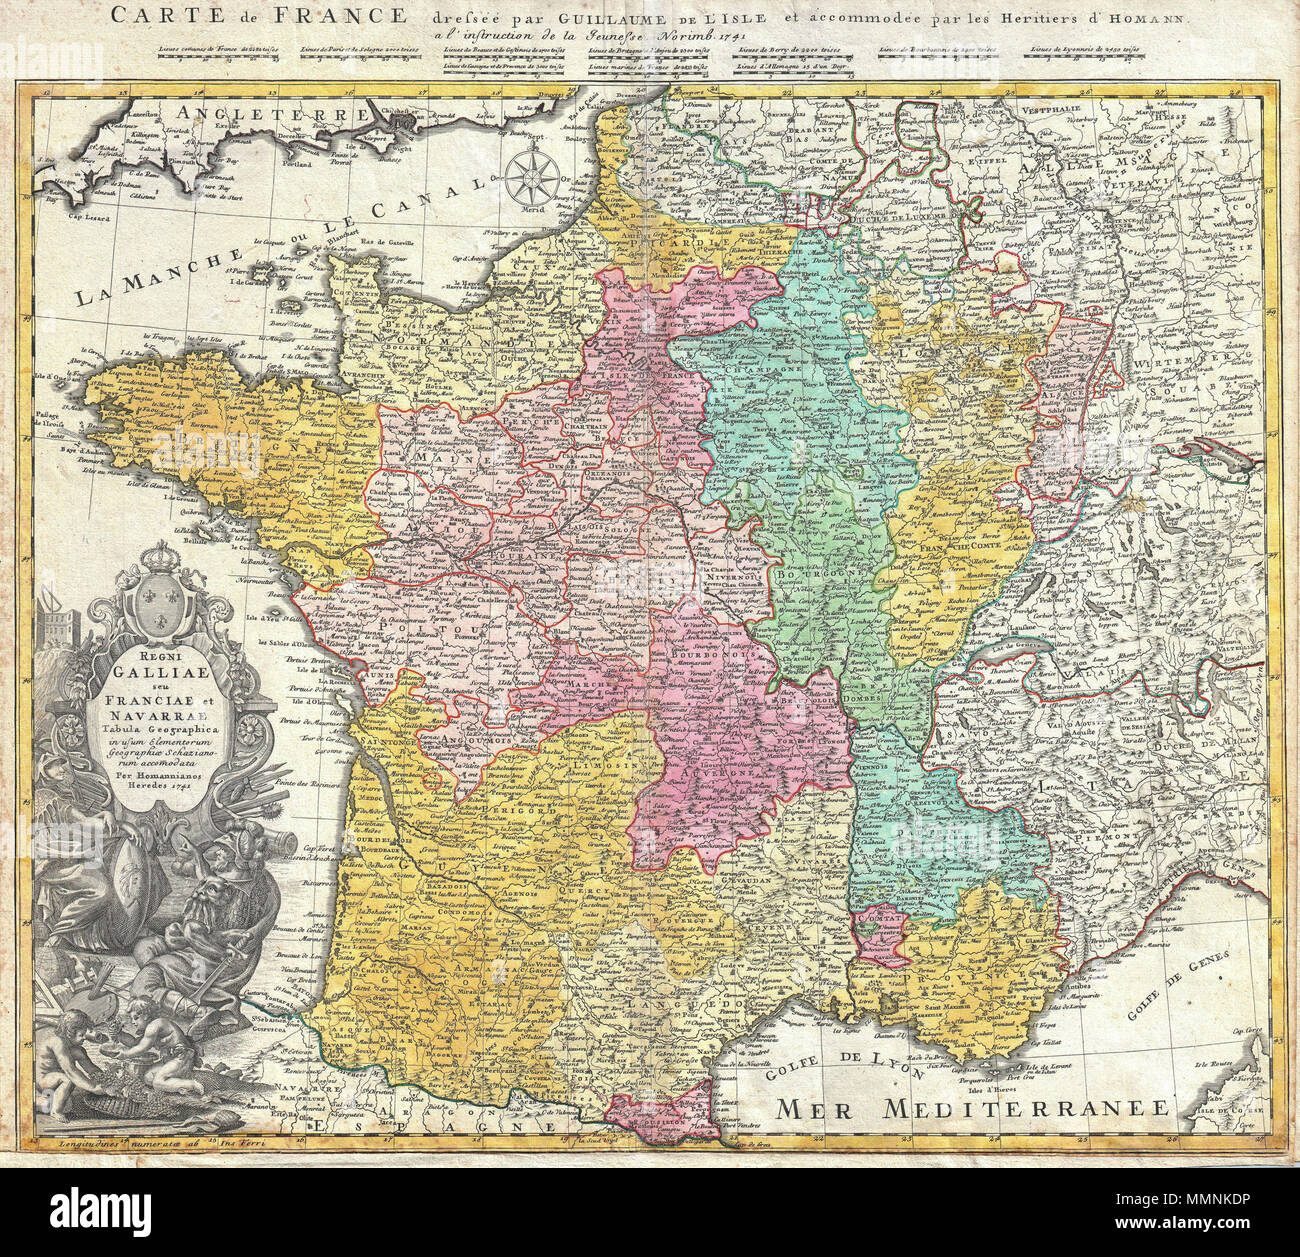 Map Of France For Children.Homann Heirs Map Of France Stock Photos Homann Heirs Map Of France